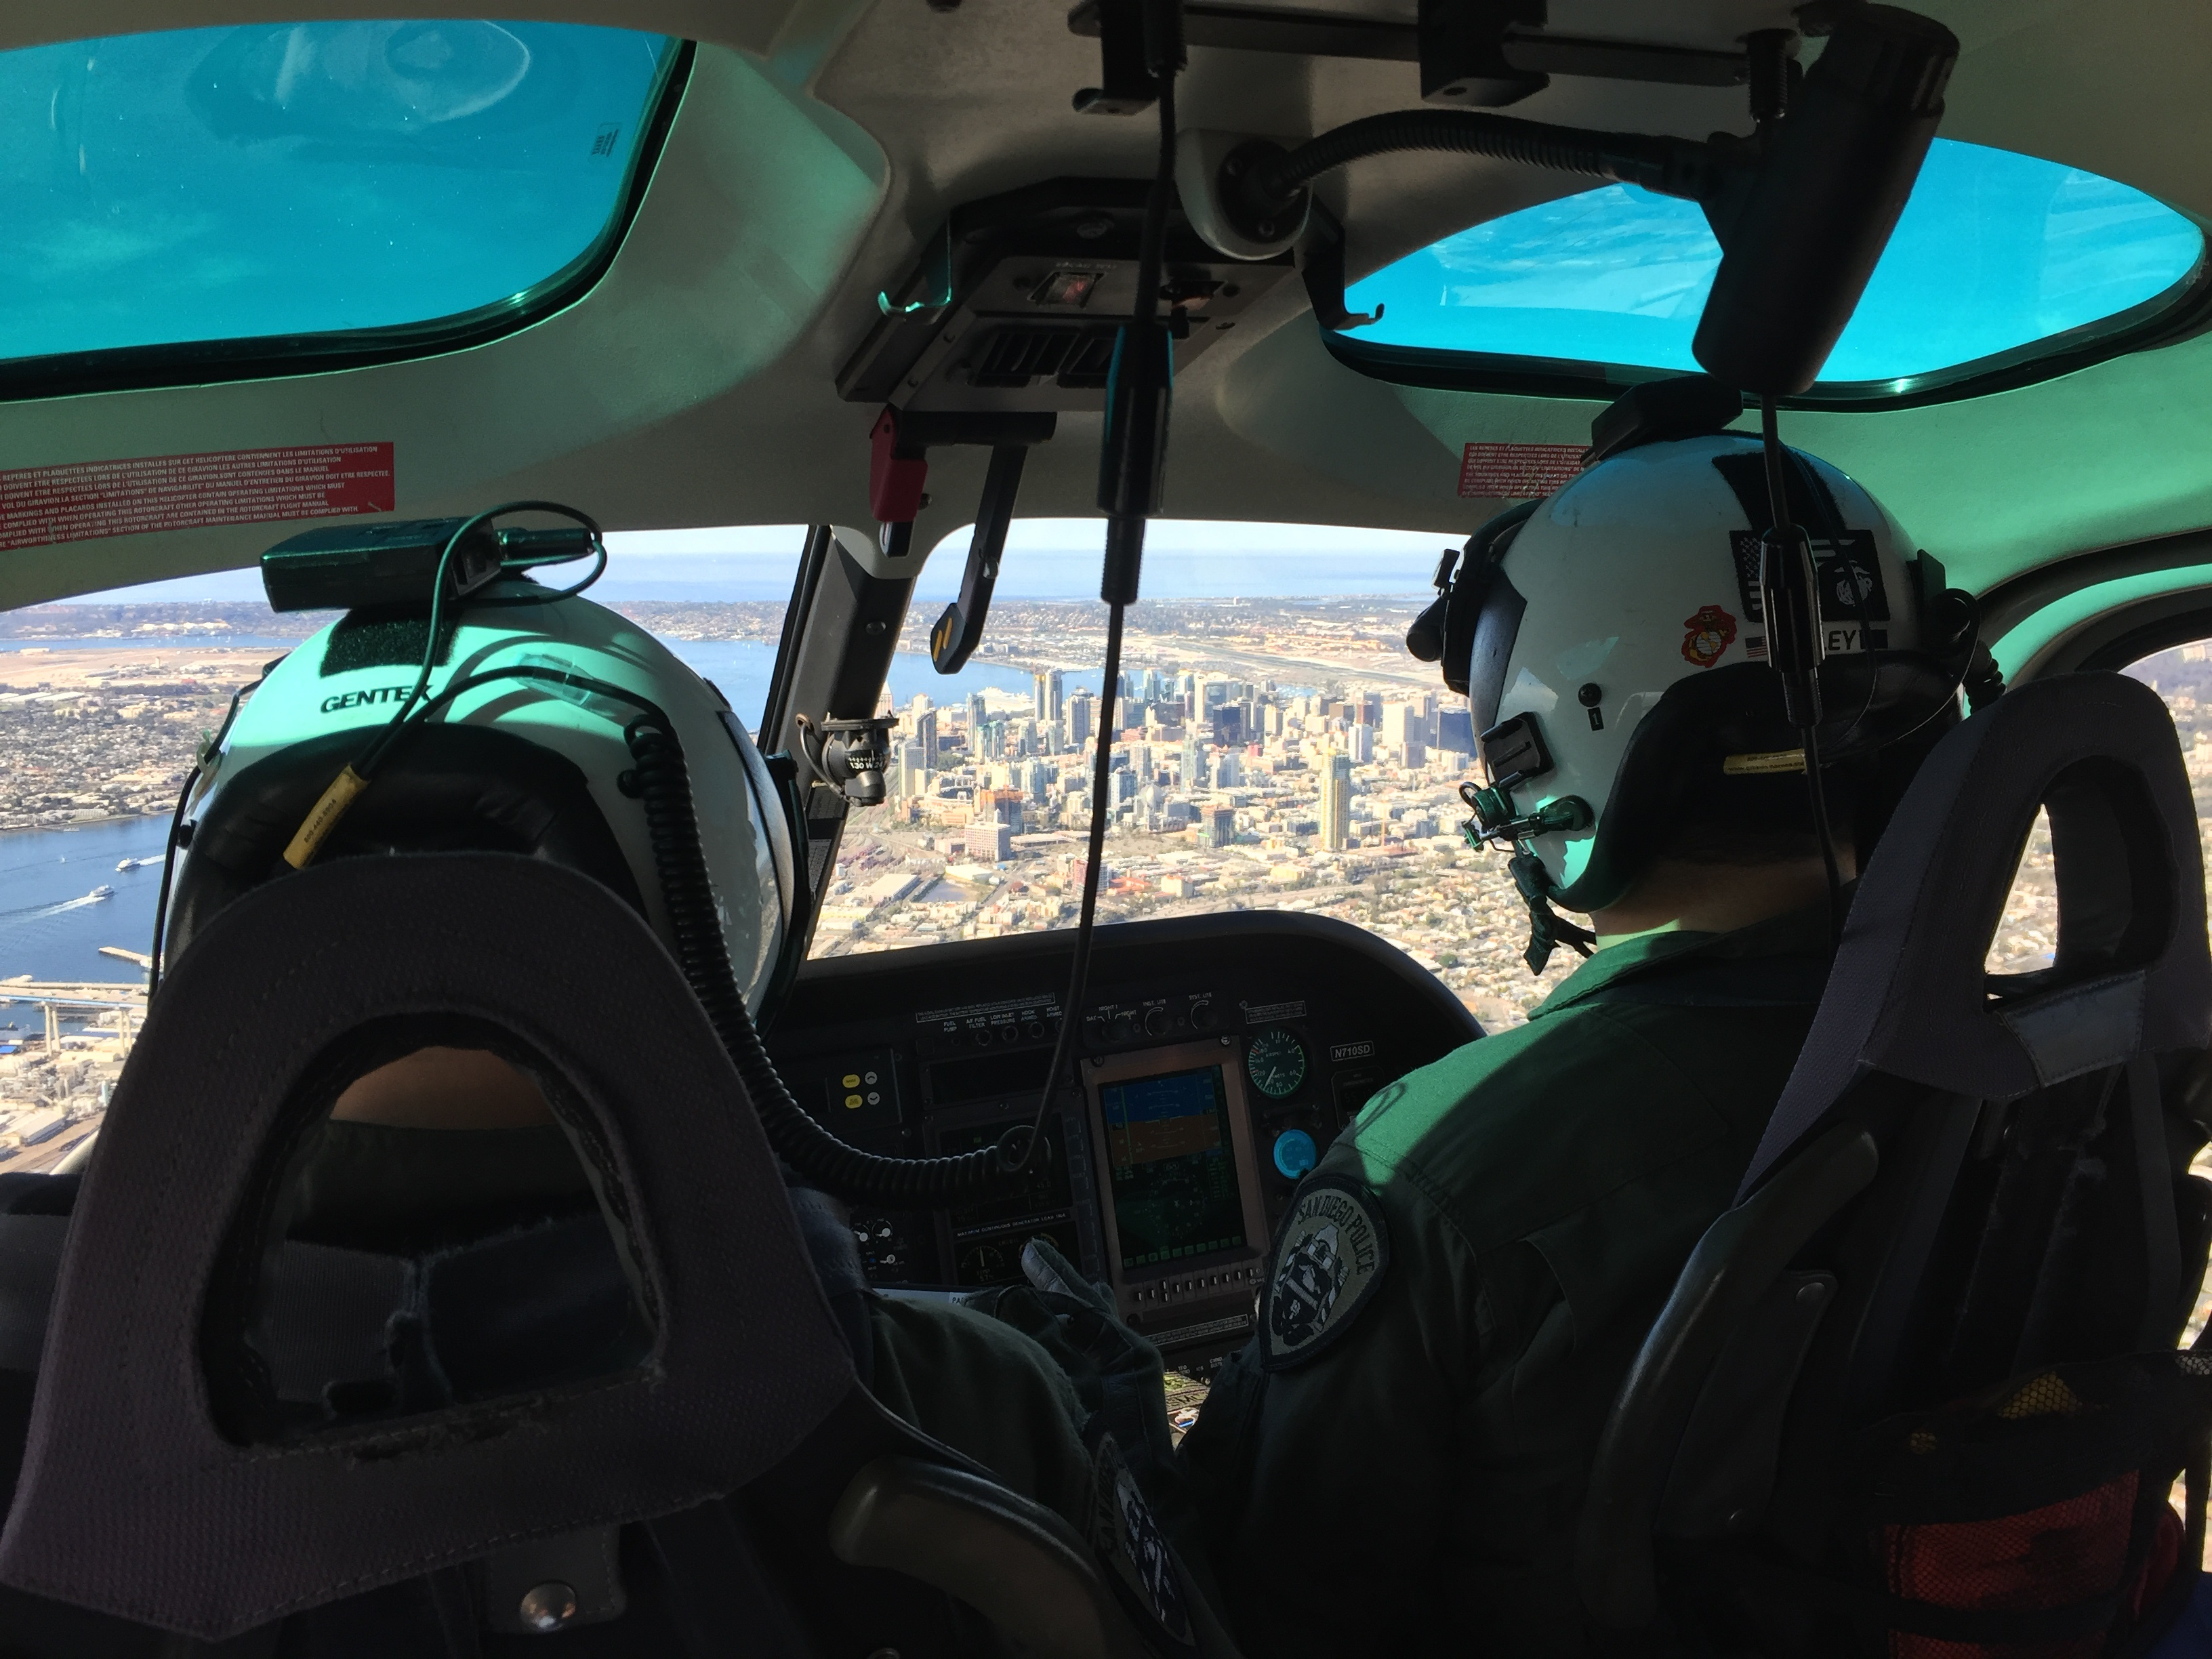 Photo taken inside an SDPD (ABLE) Helicopter